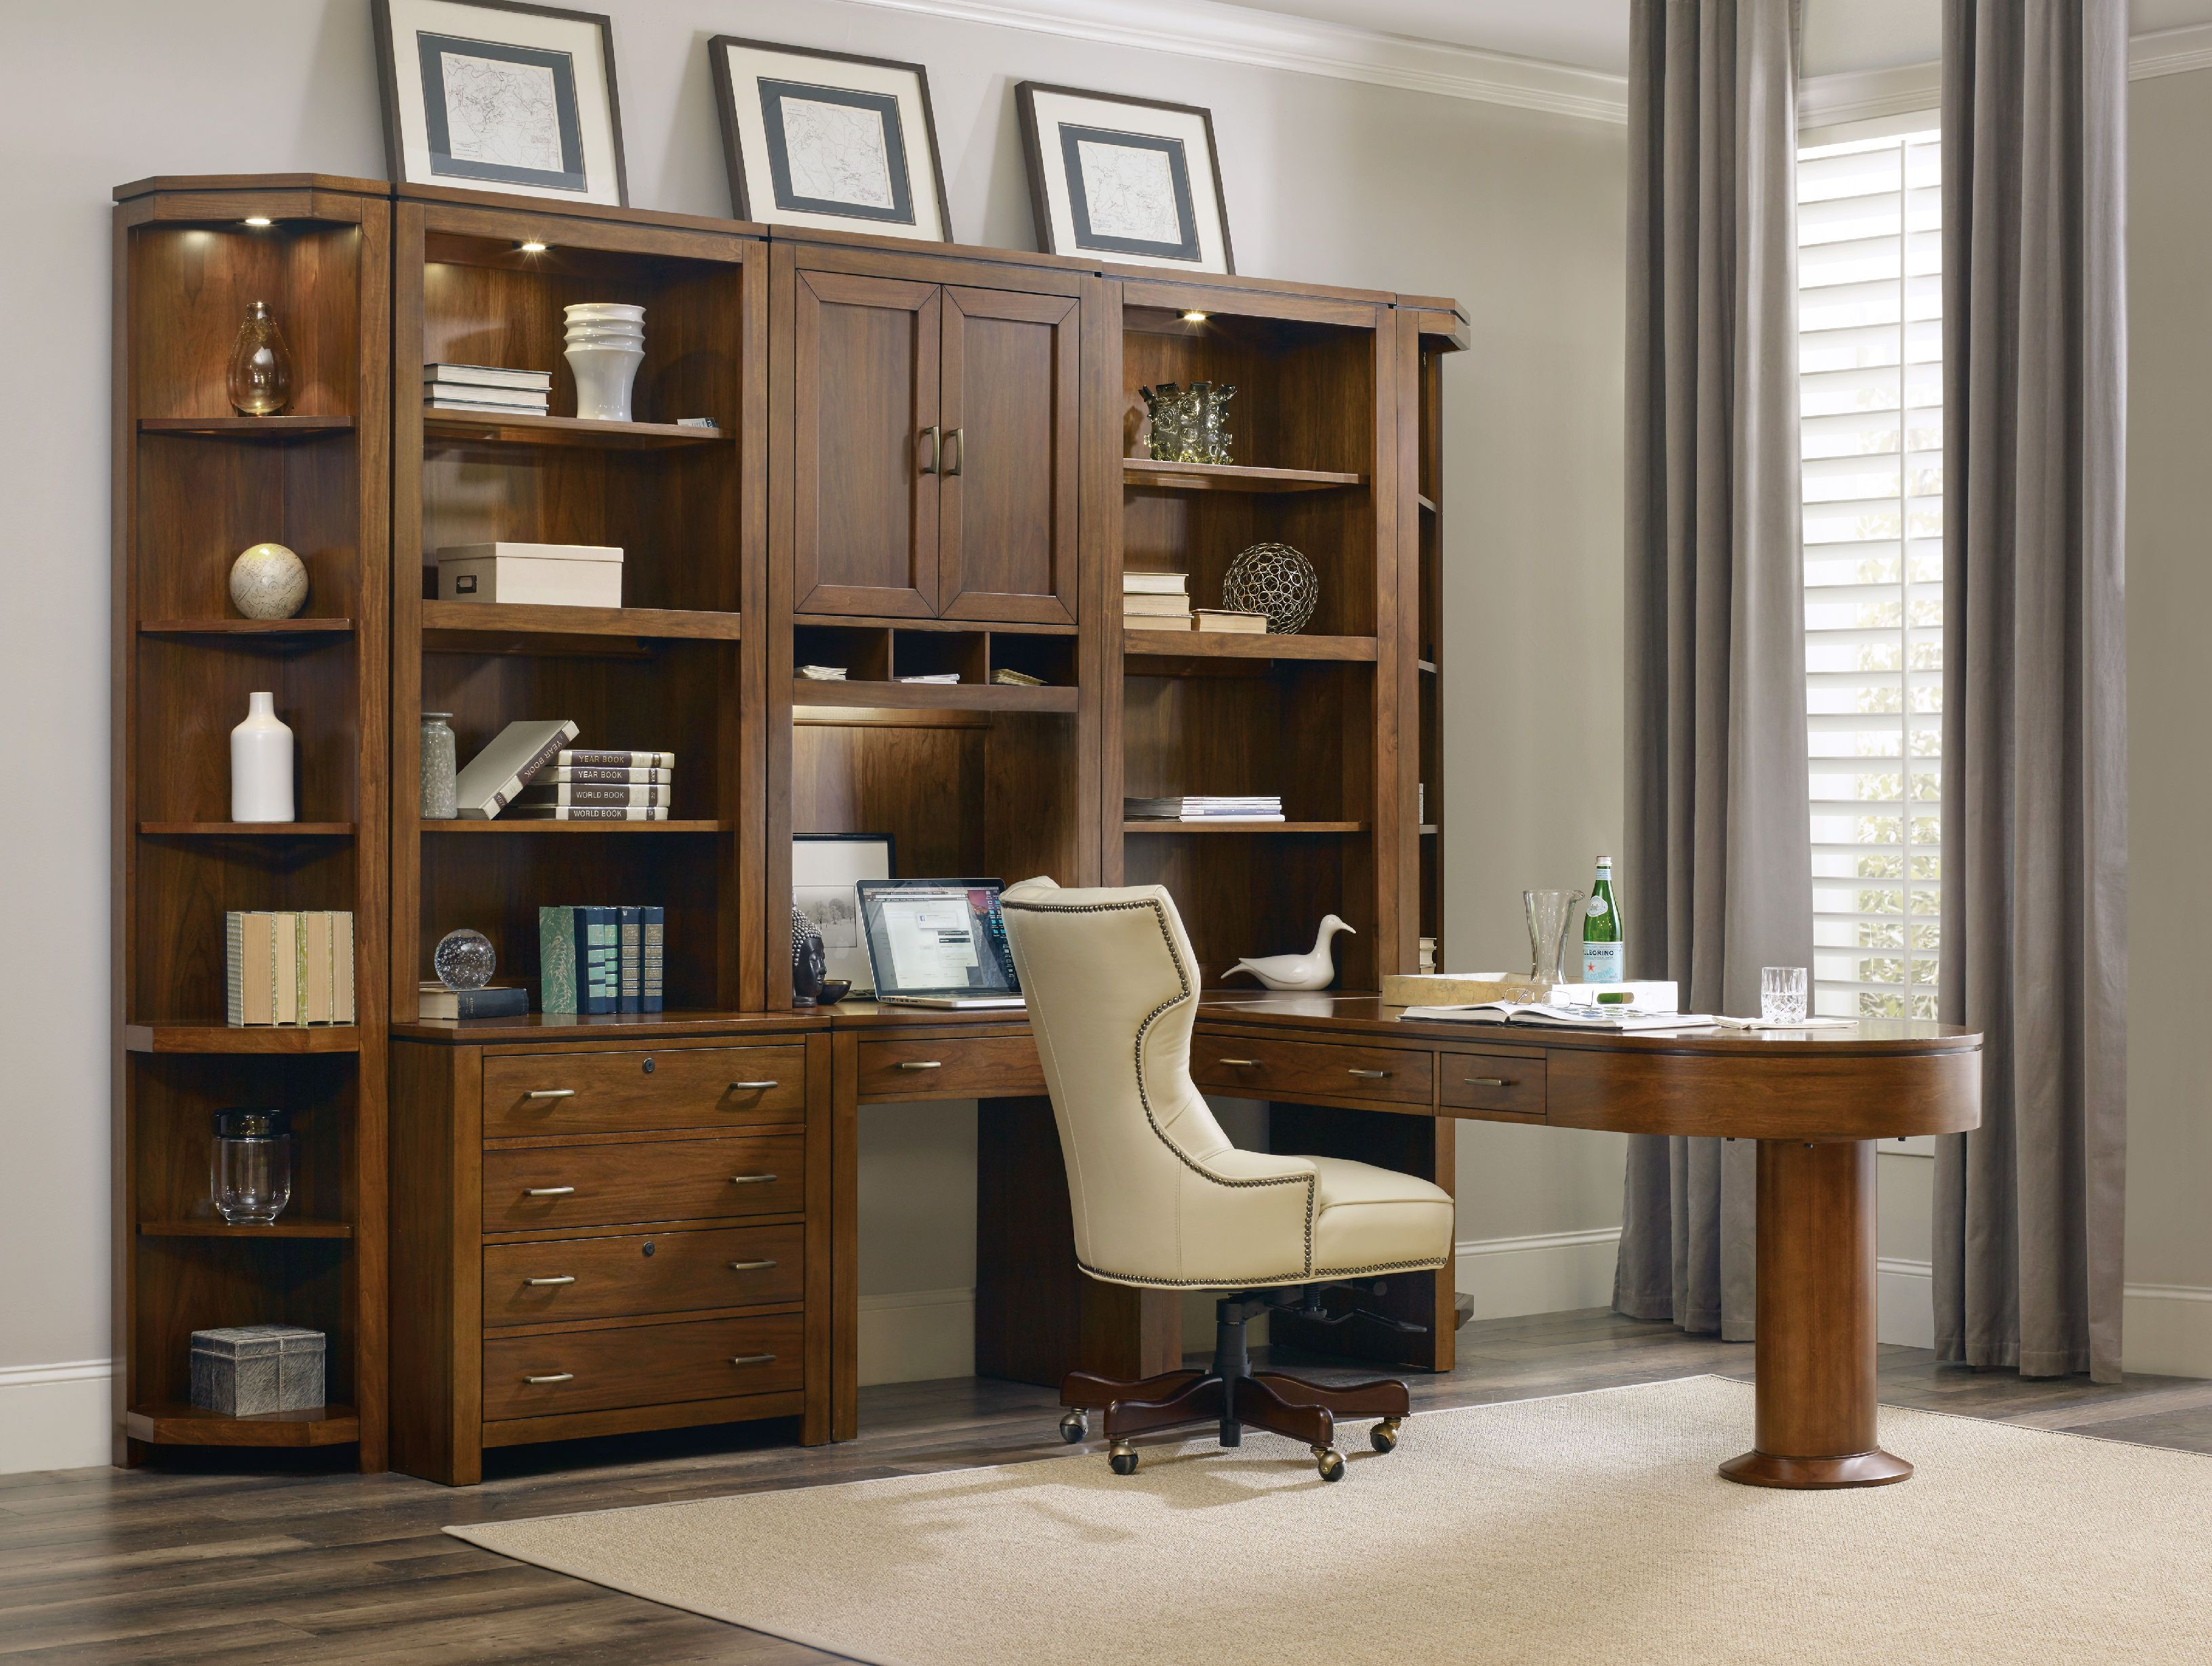 Hooker furniture home office viewpoint modular group